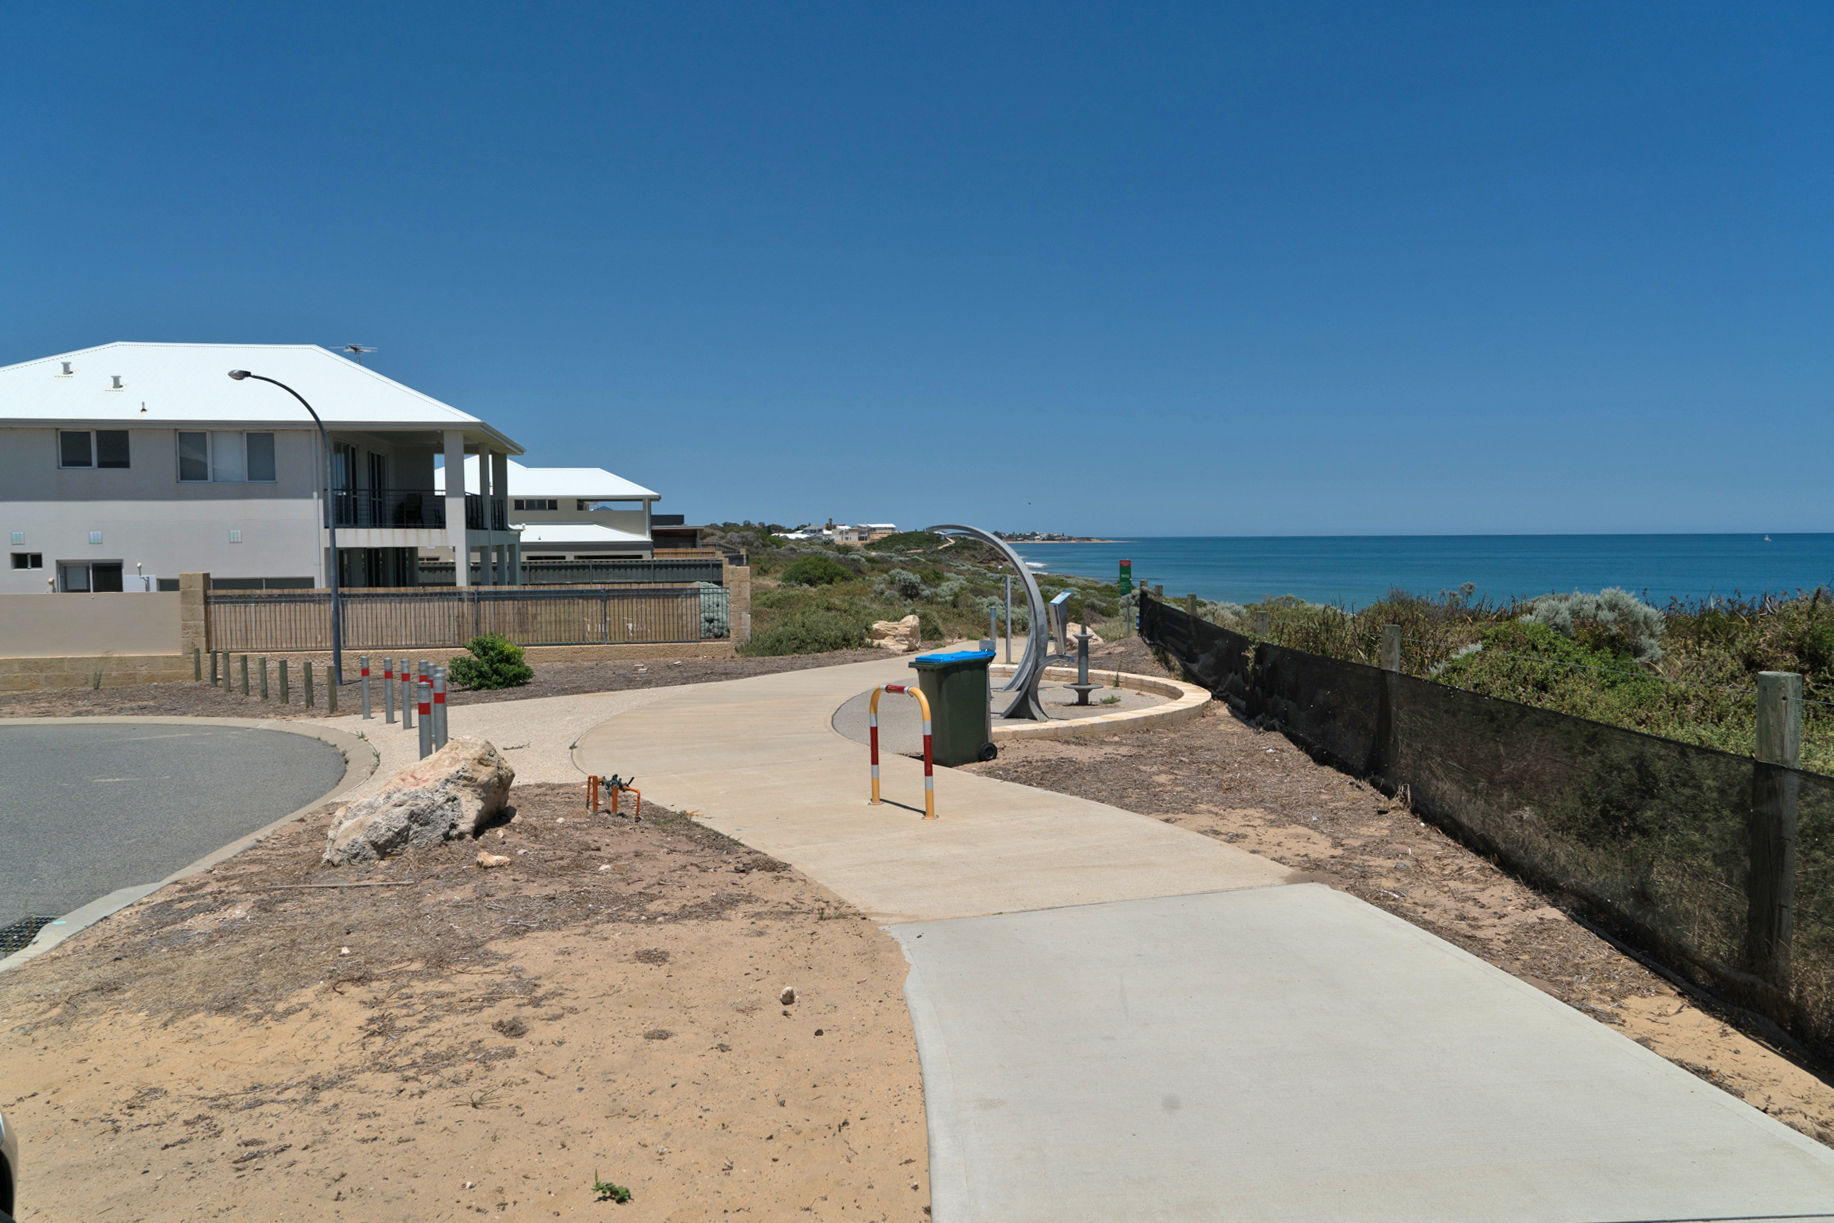 Plate 3: Start of the coastal path that runs through the foreshore reserve